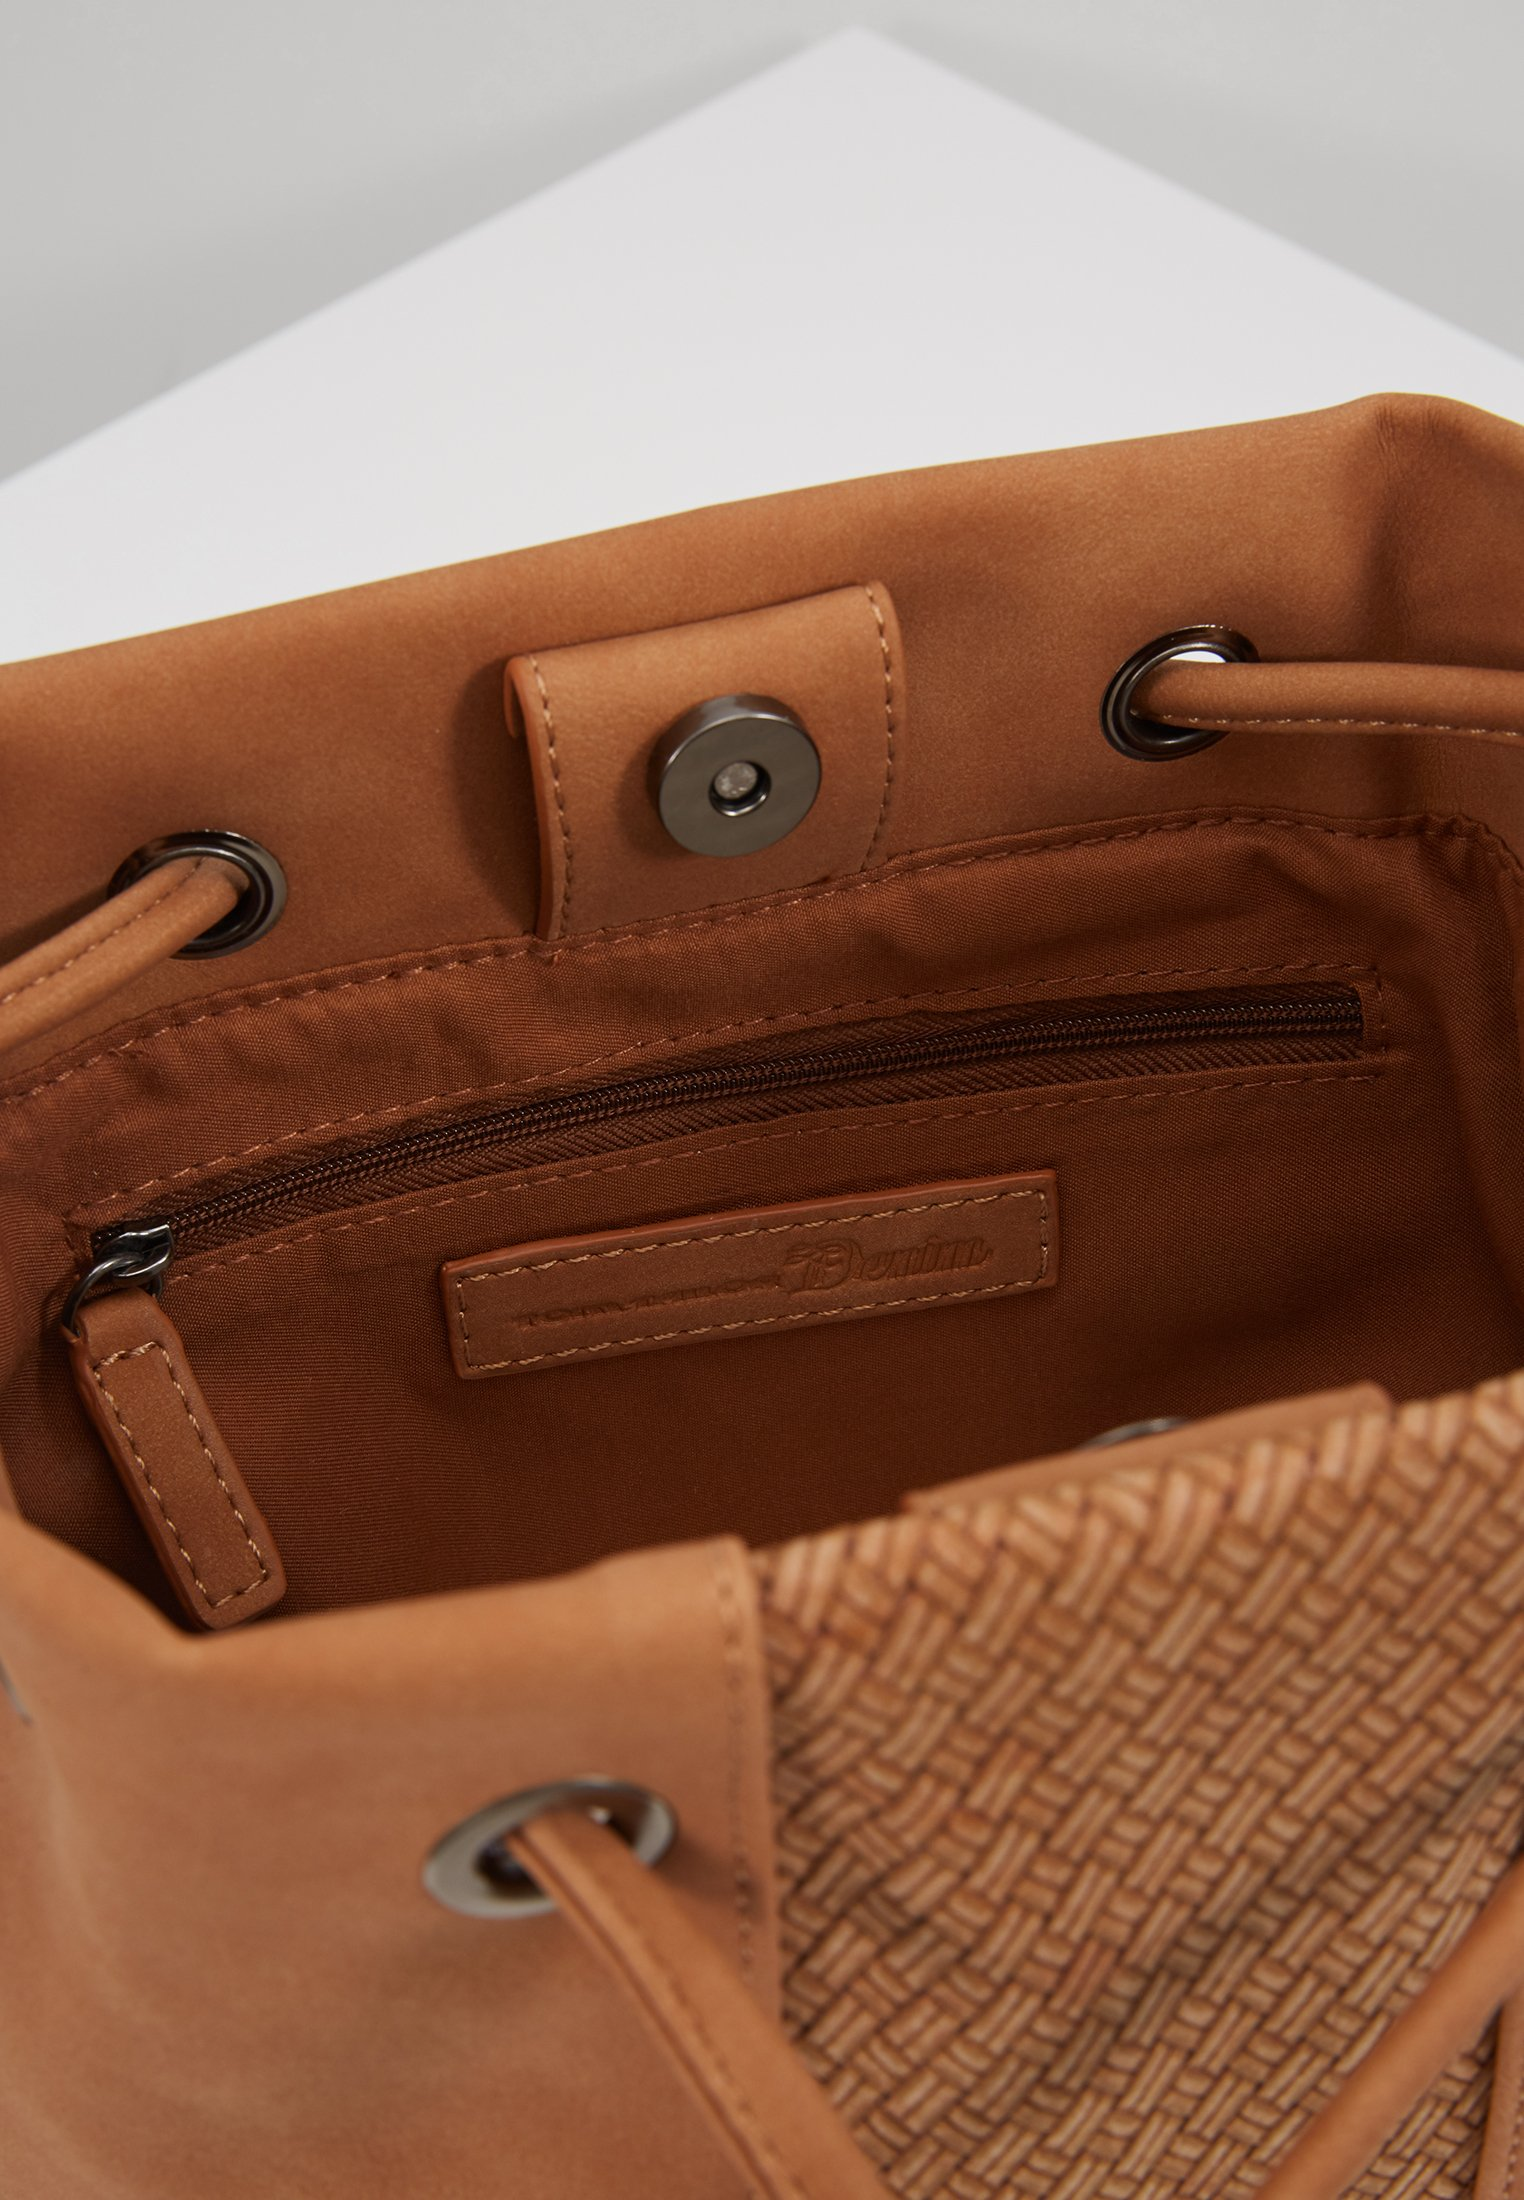 Tom Tailor Denim Sierra - Sac À Main Cognac